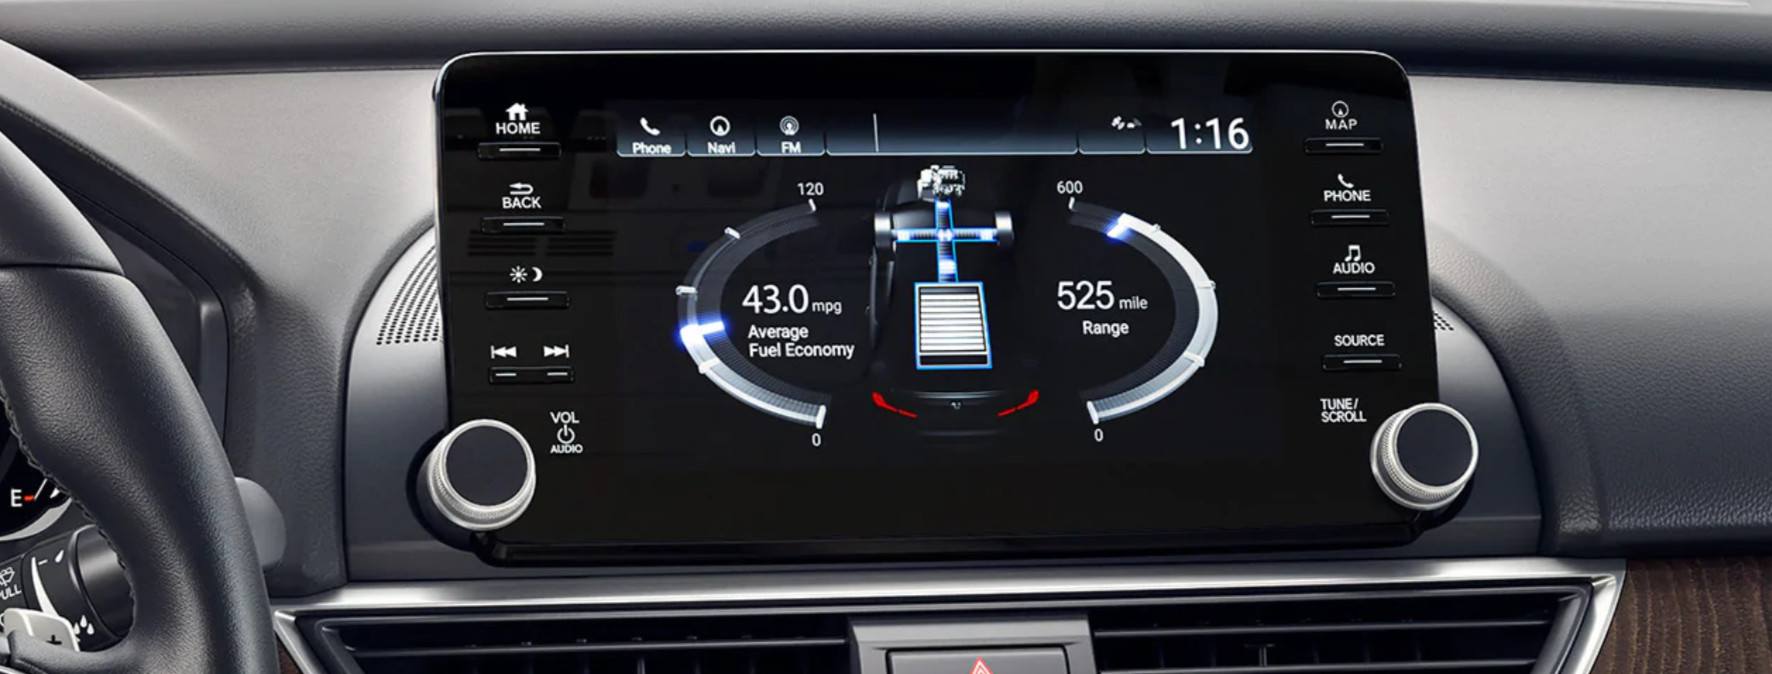 2020 Accord Touchscreen